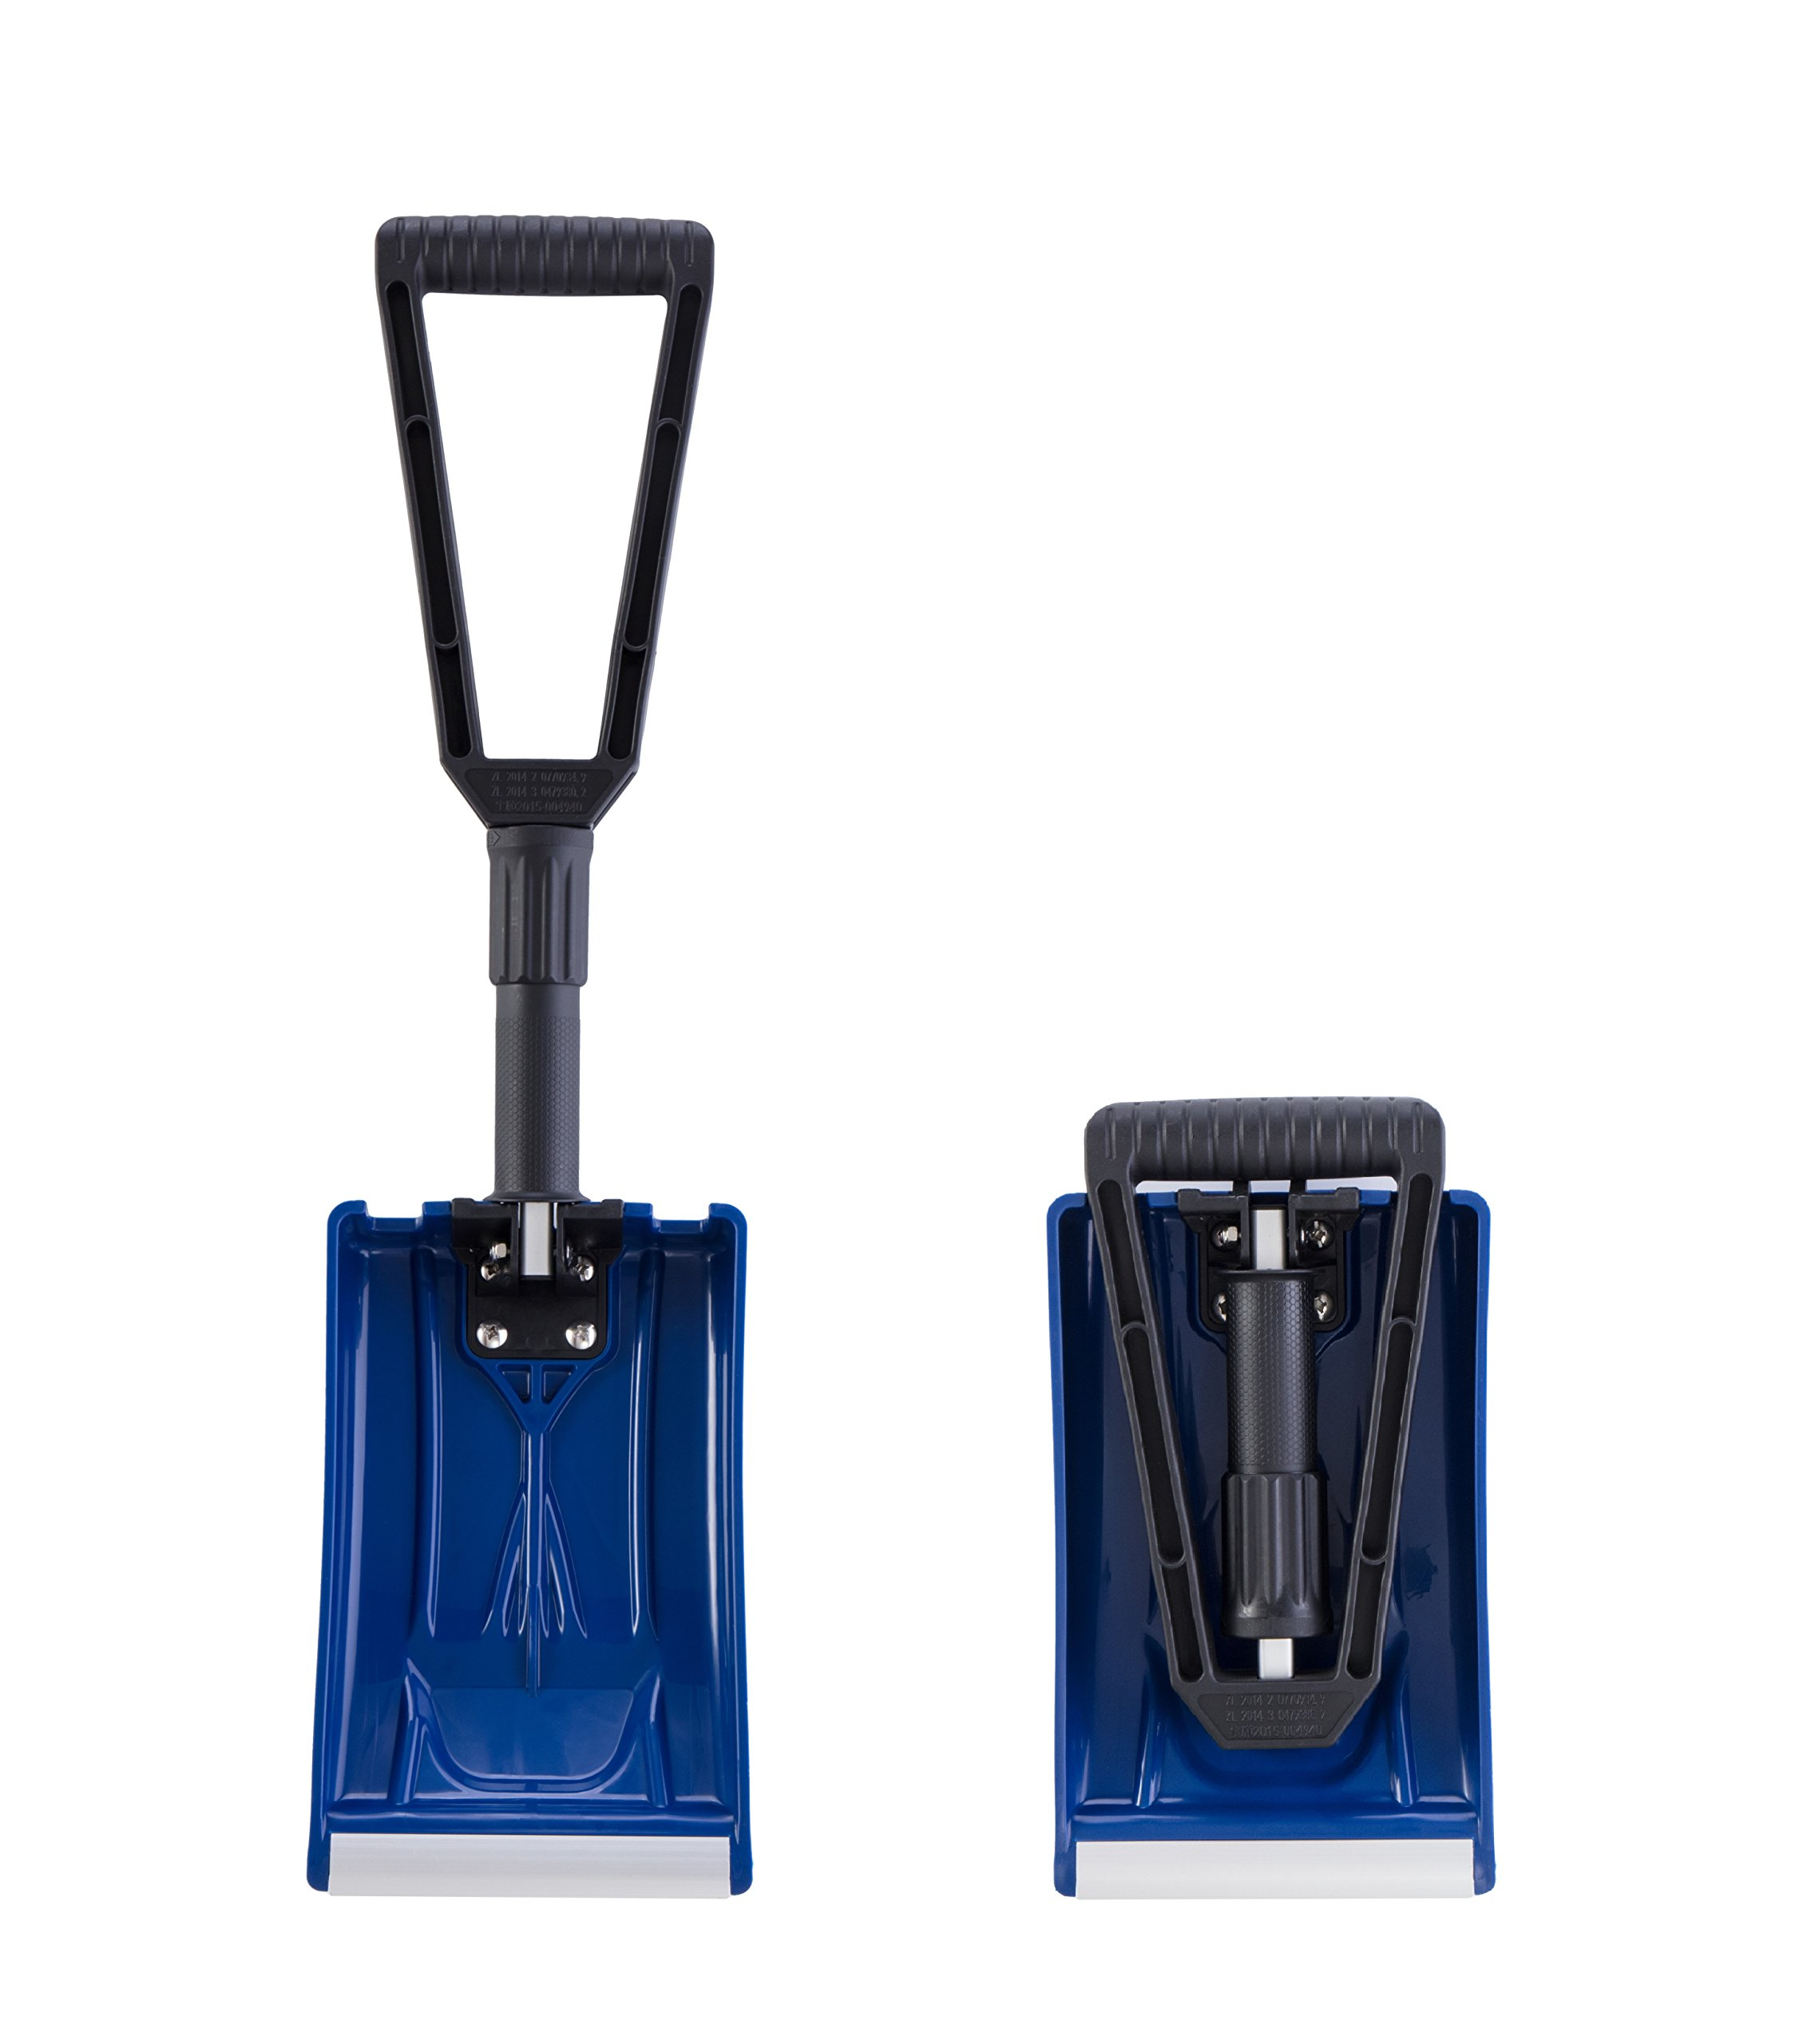 ORIENTOOLS Collapsible Folding Snow Shovel with Durable Aluminum Edge Blade (Blade 6'') by ORIENTOOLS (Image #4)